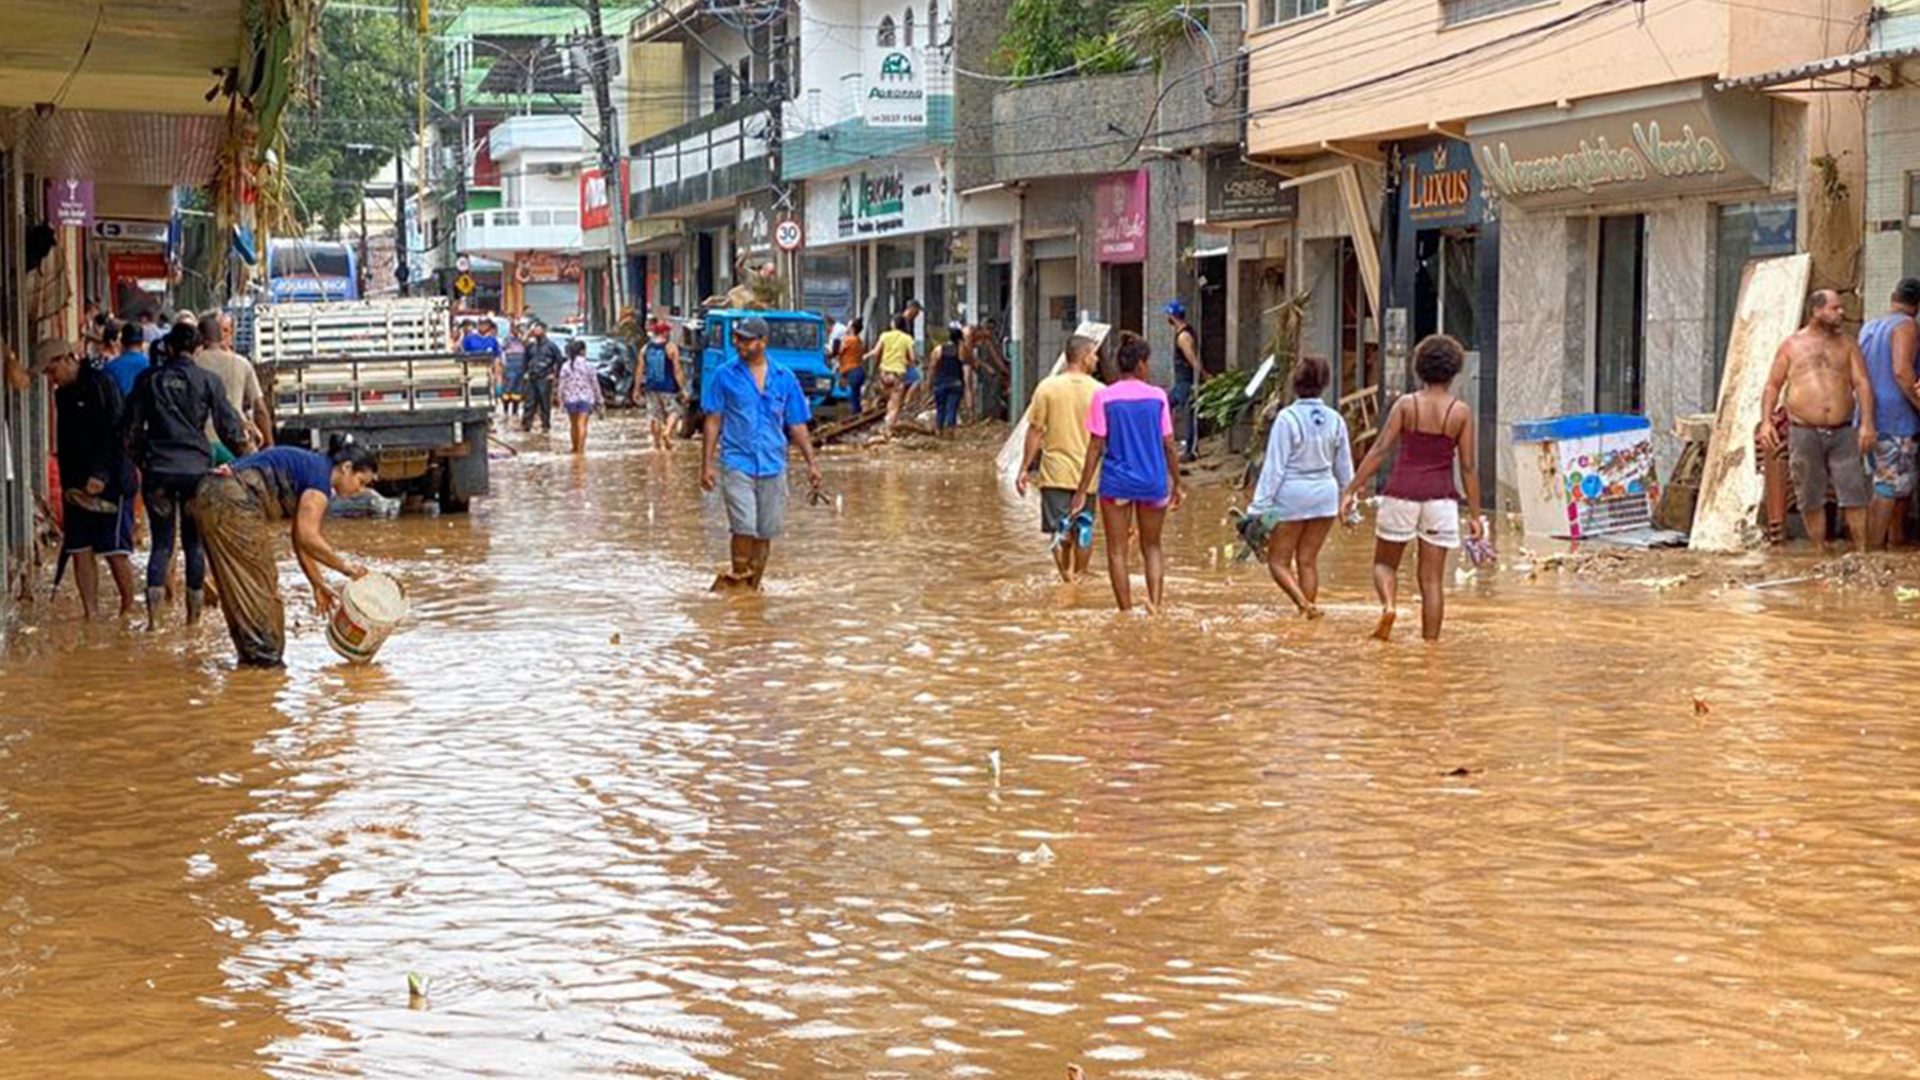 Death toll mounts to 37 in Brazil floods